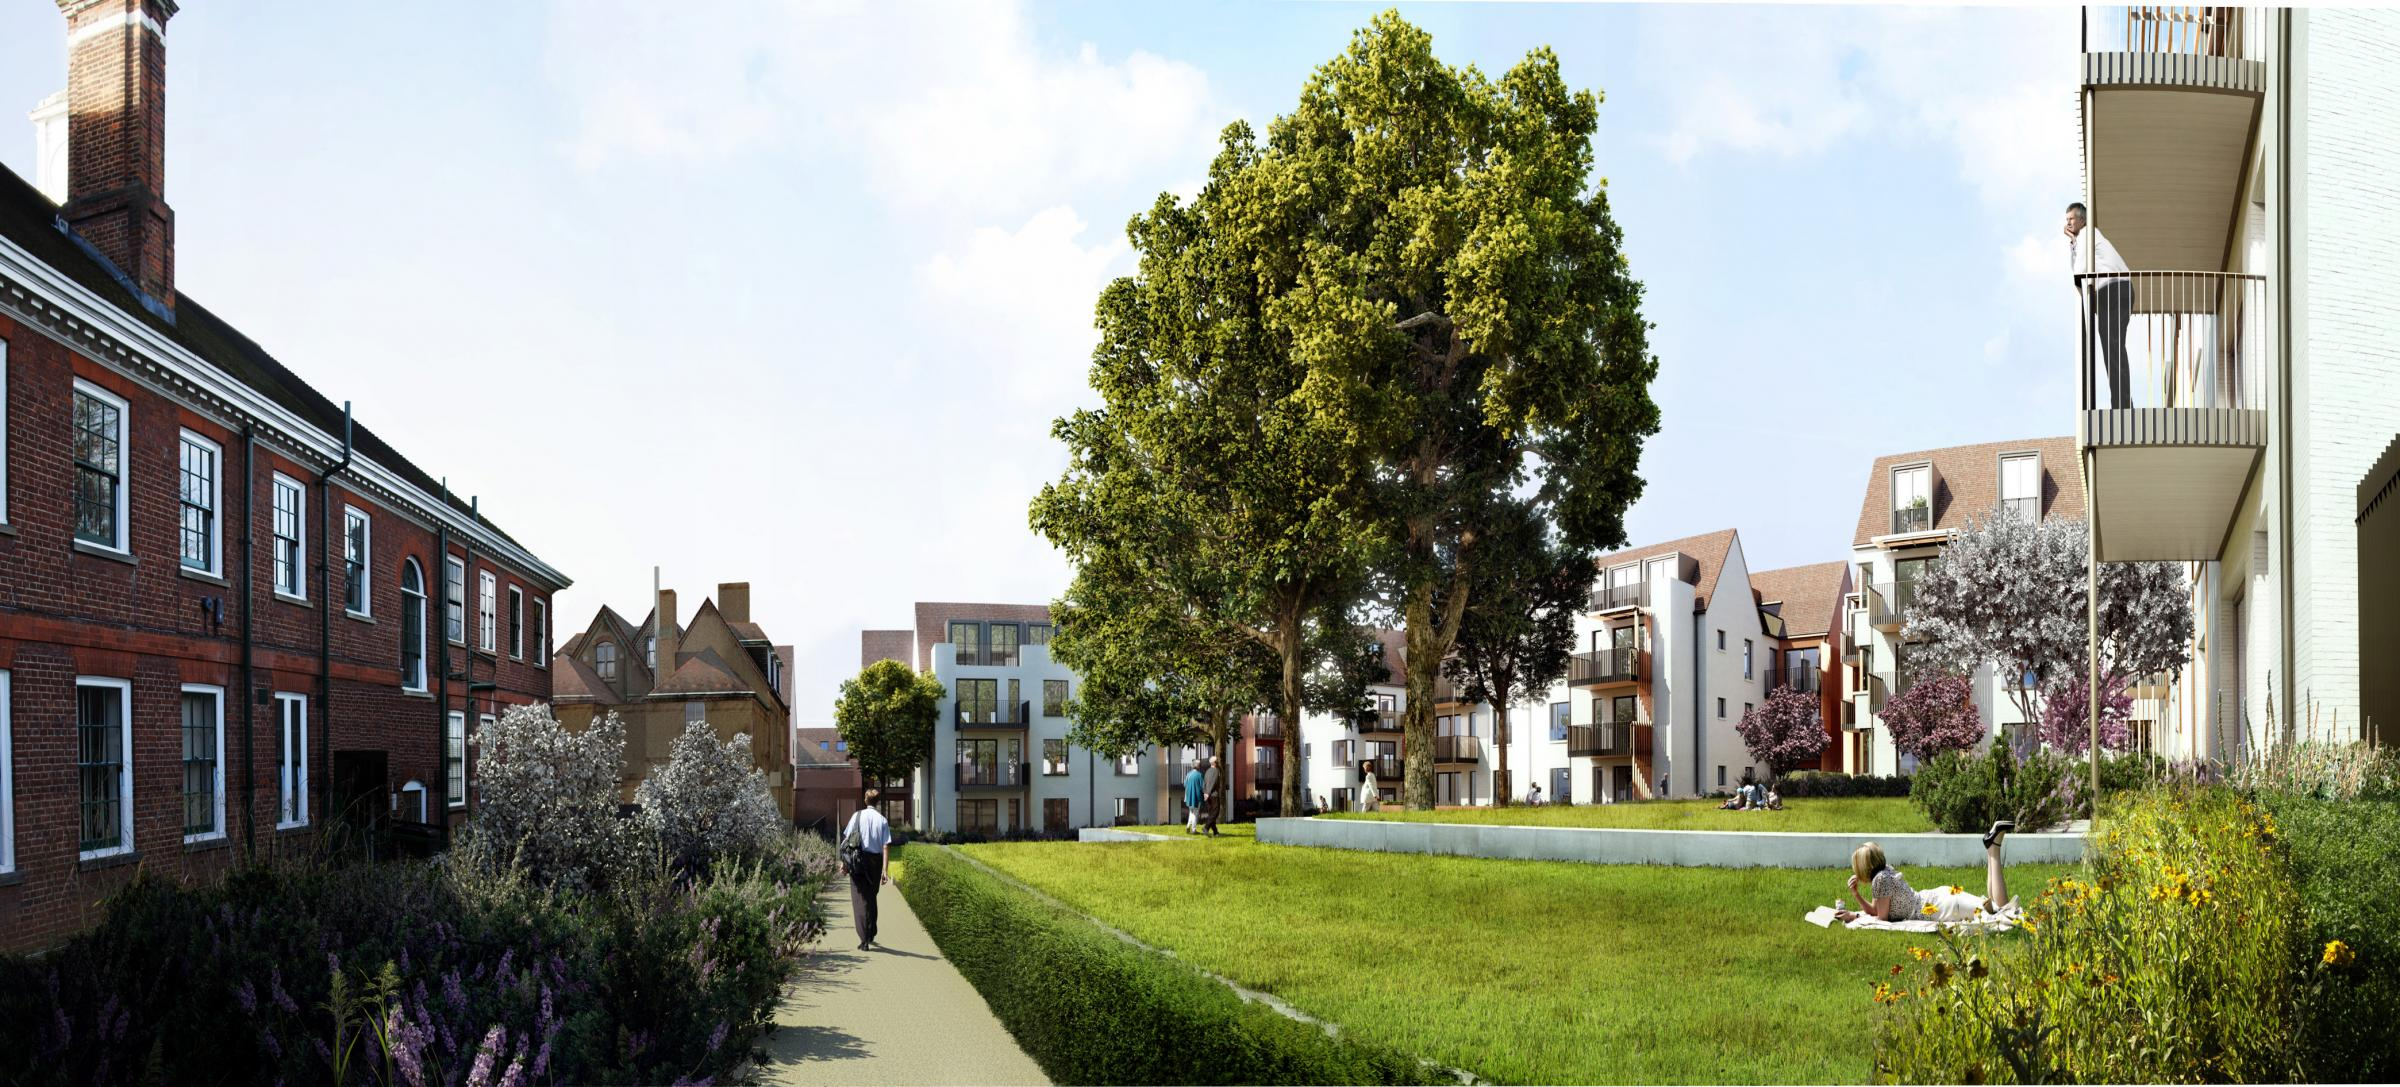 An artists impression of the fomer site of St Luke's Hospital will look like after more than 160 homes are built in Muswell Hill